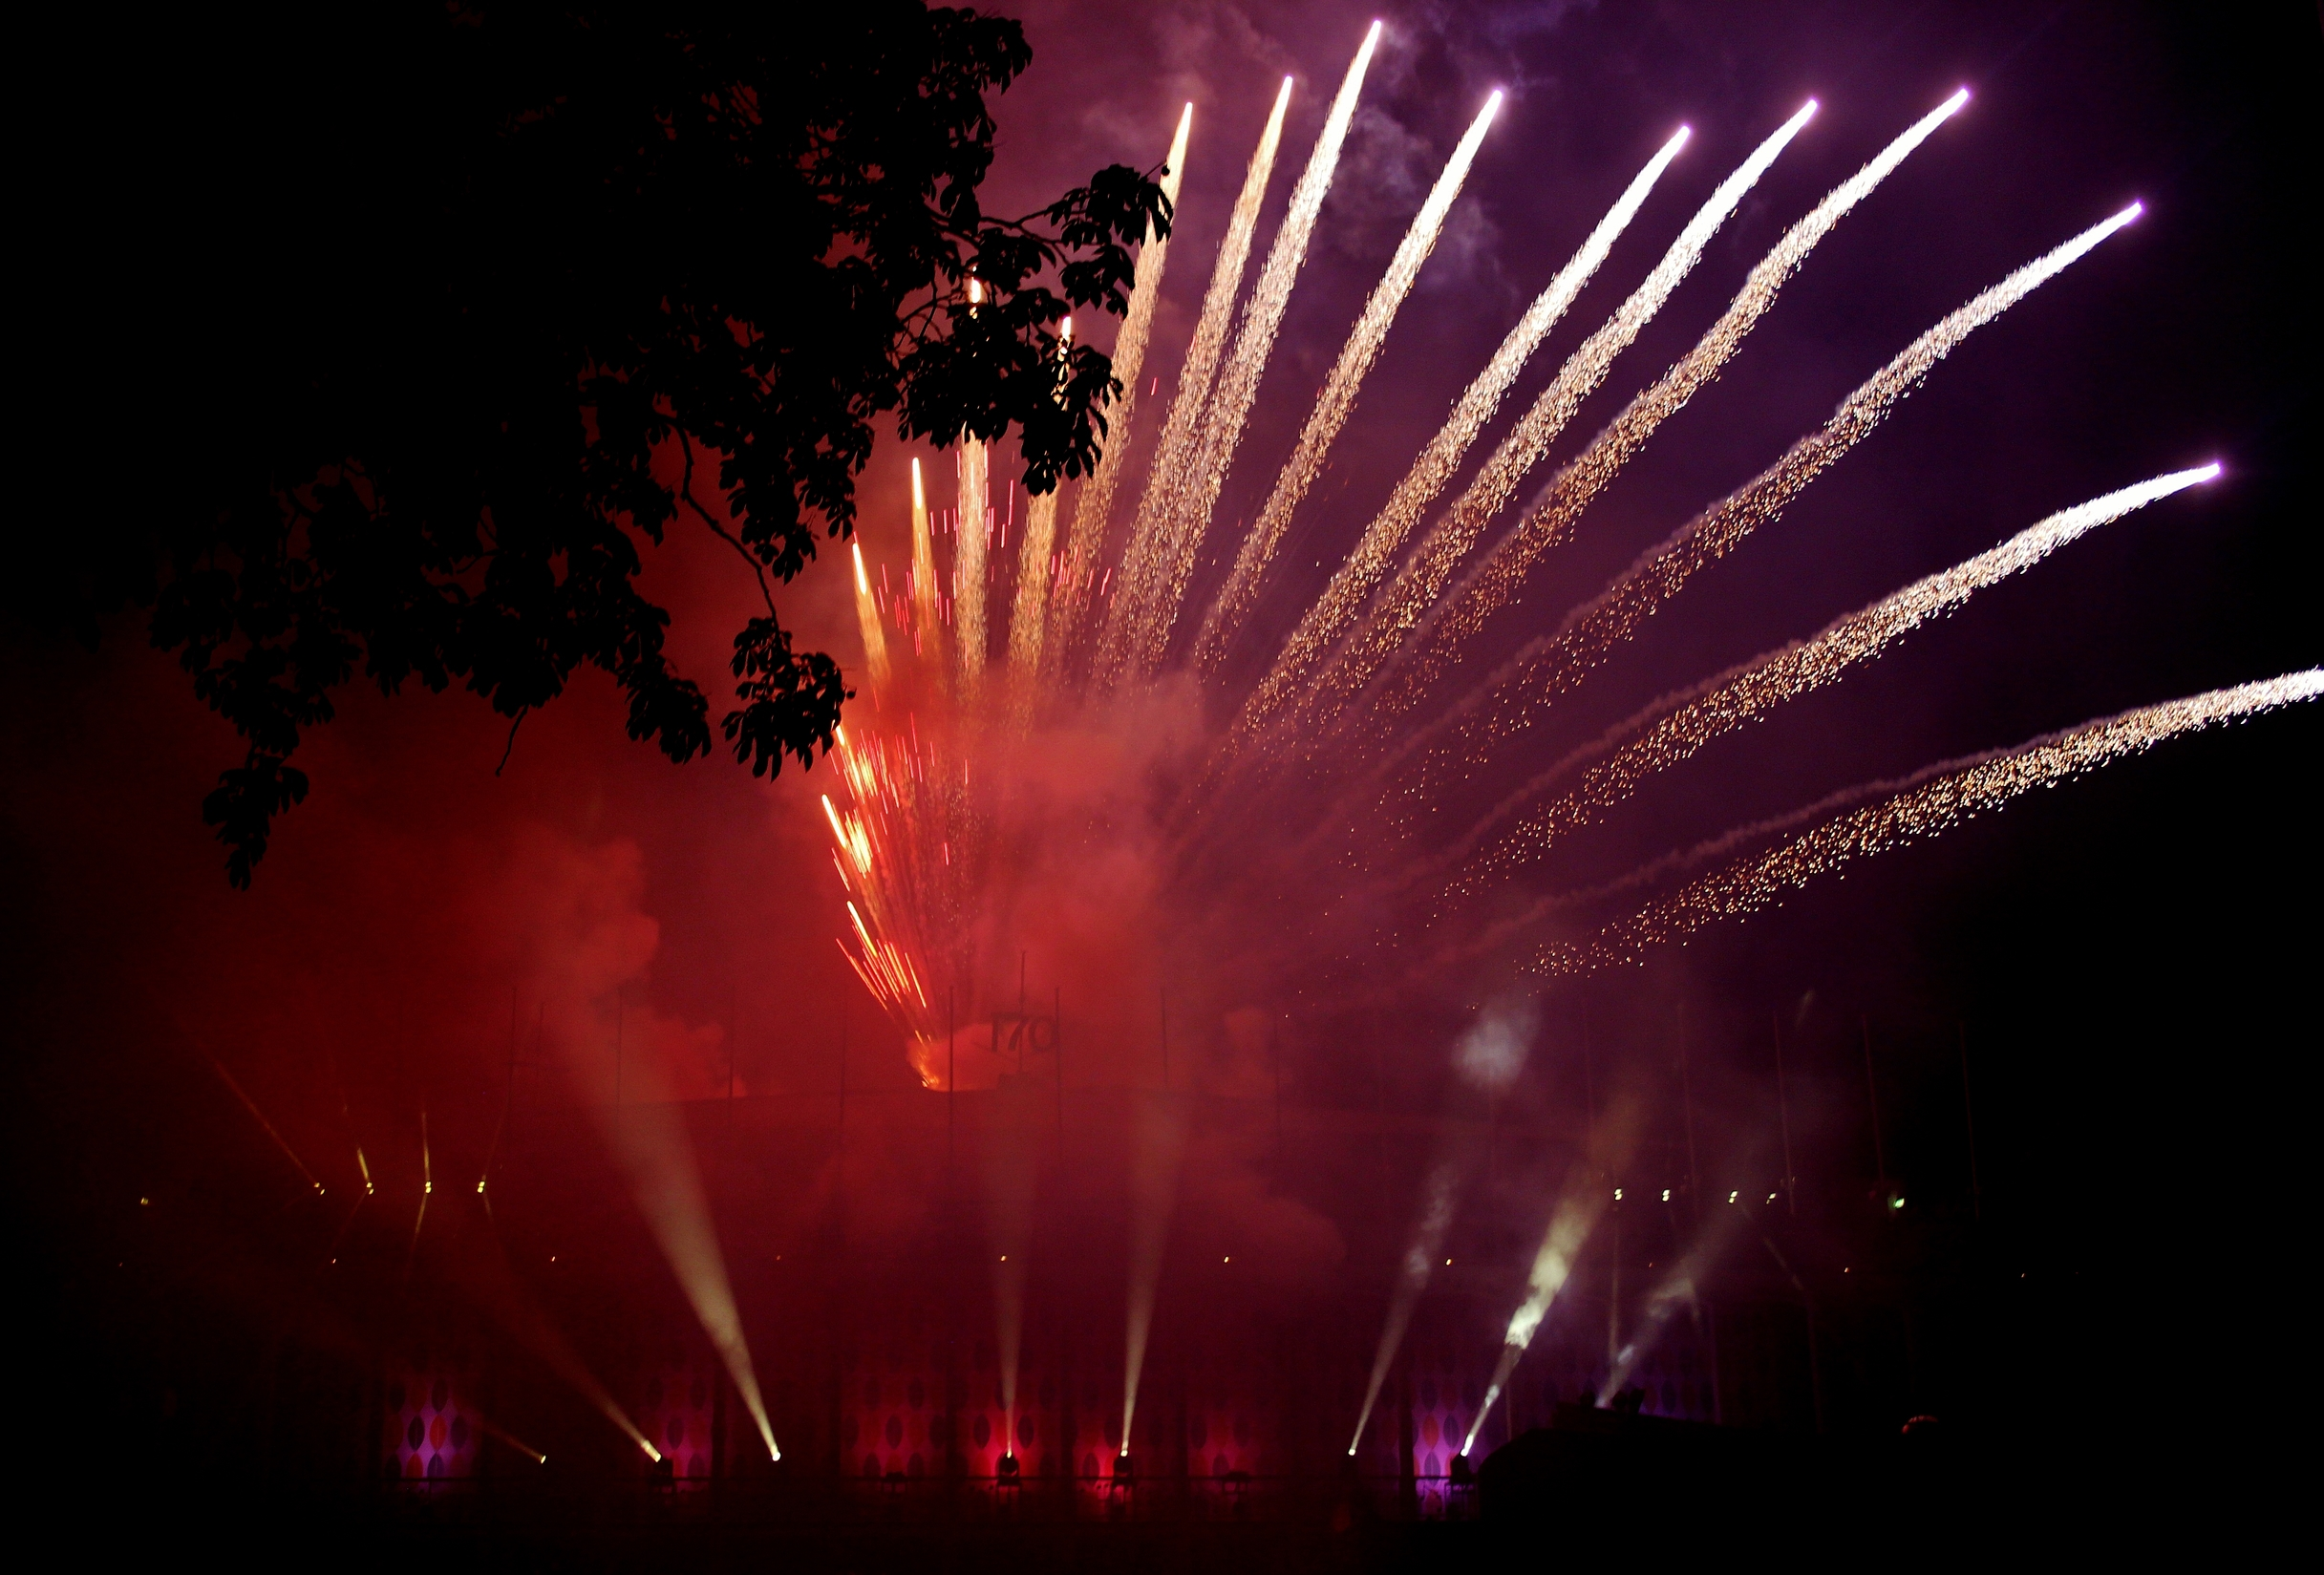 Firework display at Tivoli